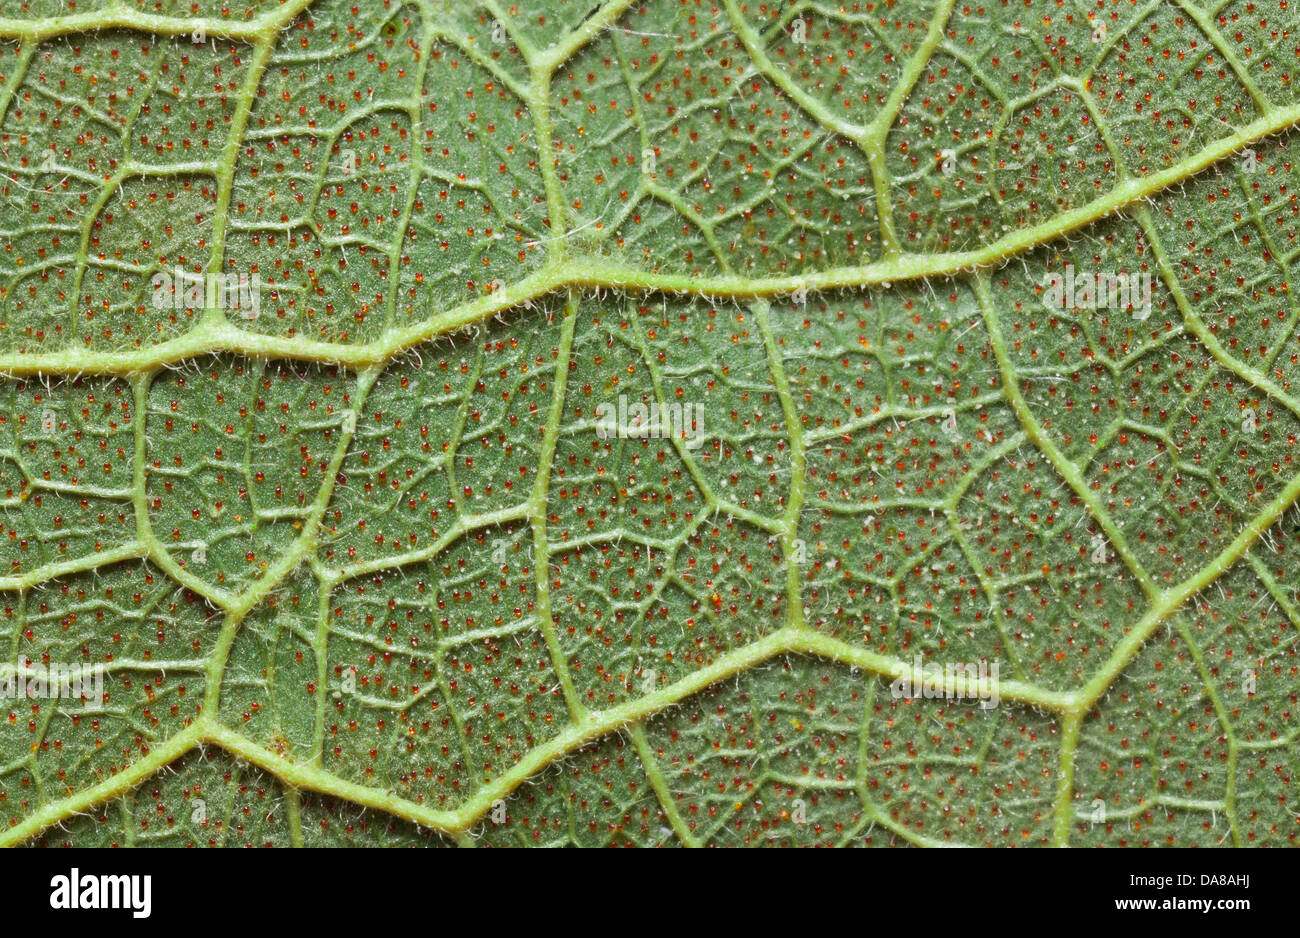 Glandular leaf underside high macro photograph showing vein structure - Stock Image